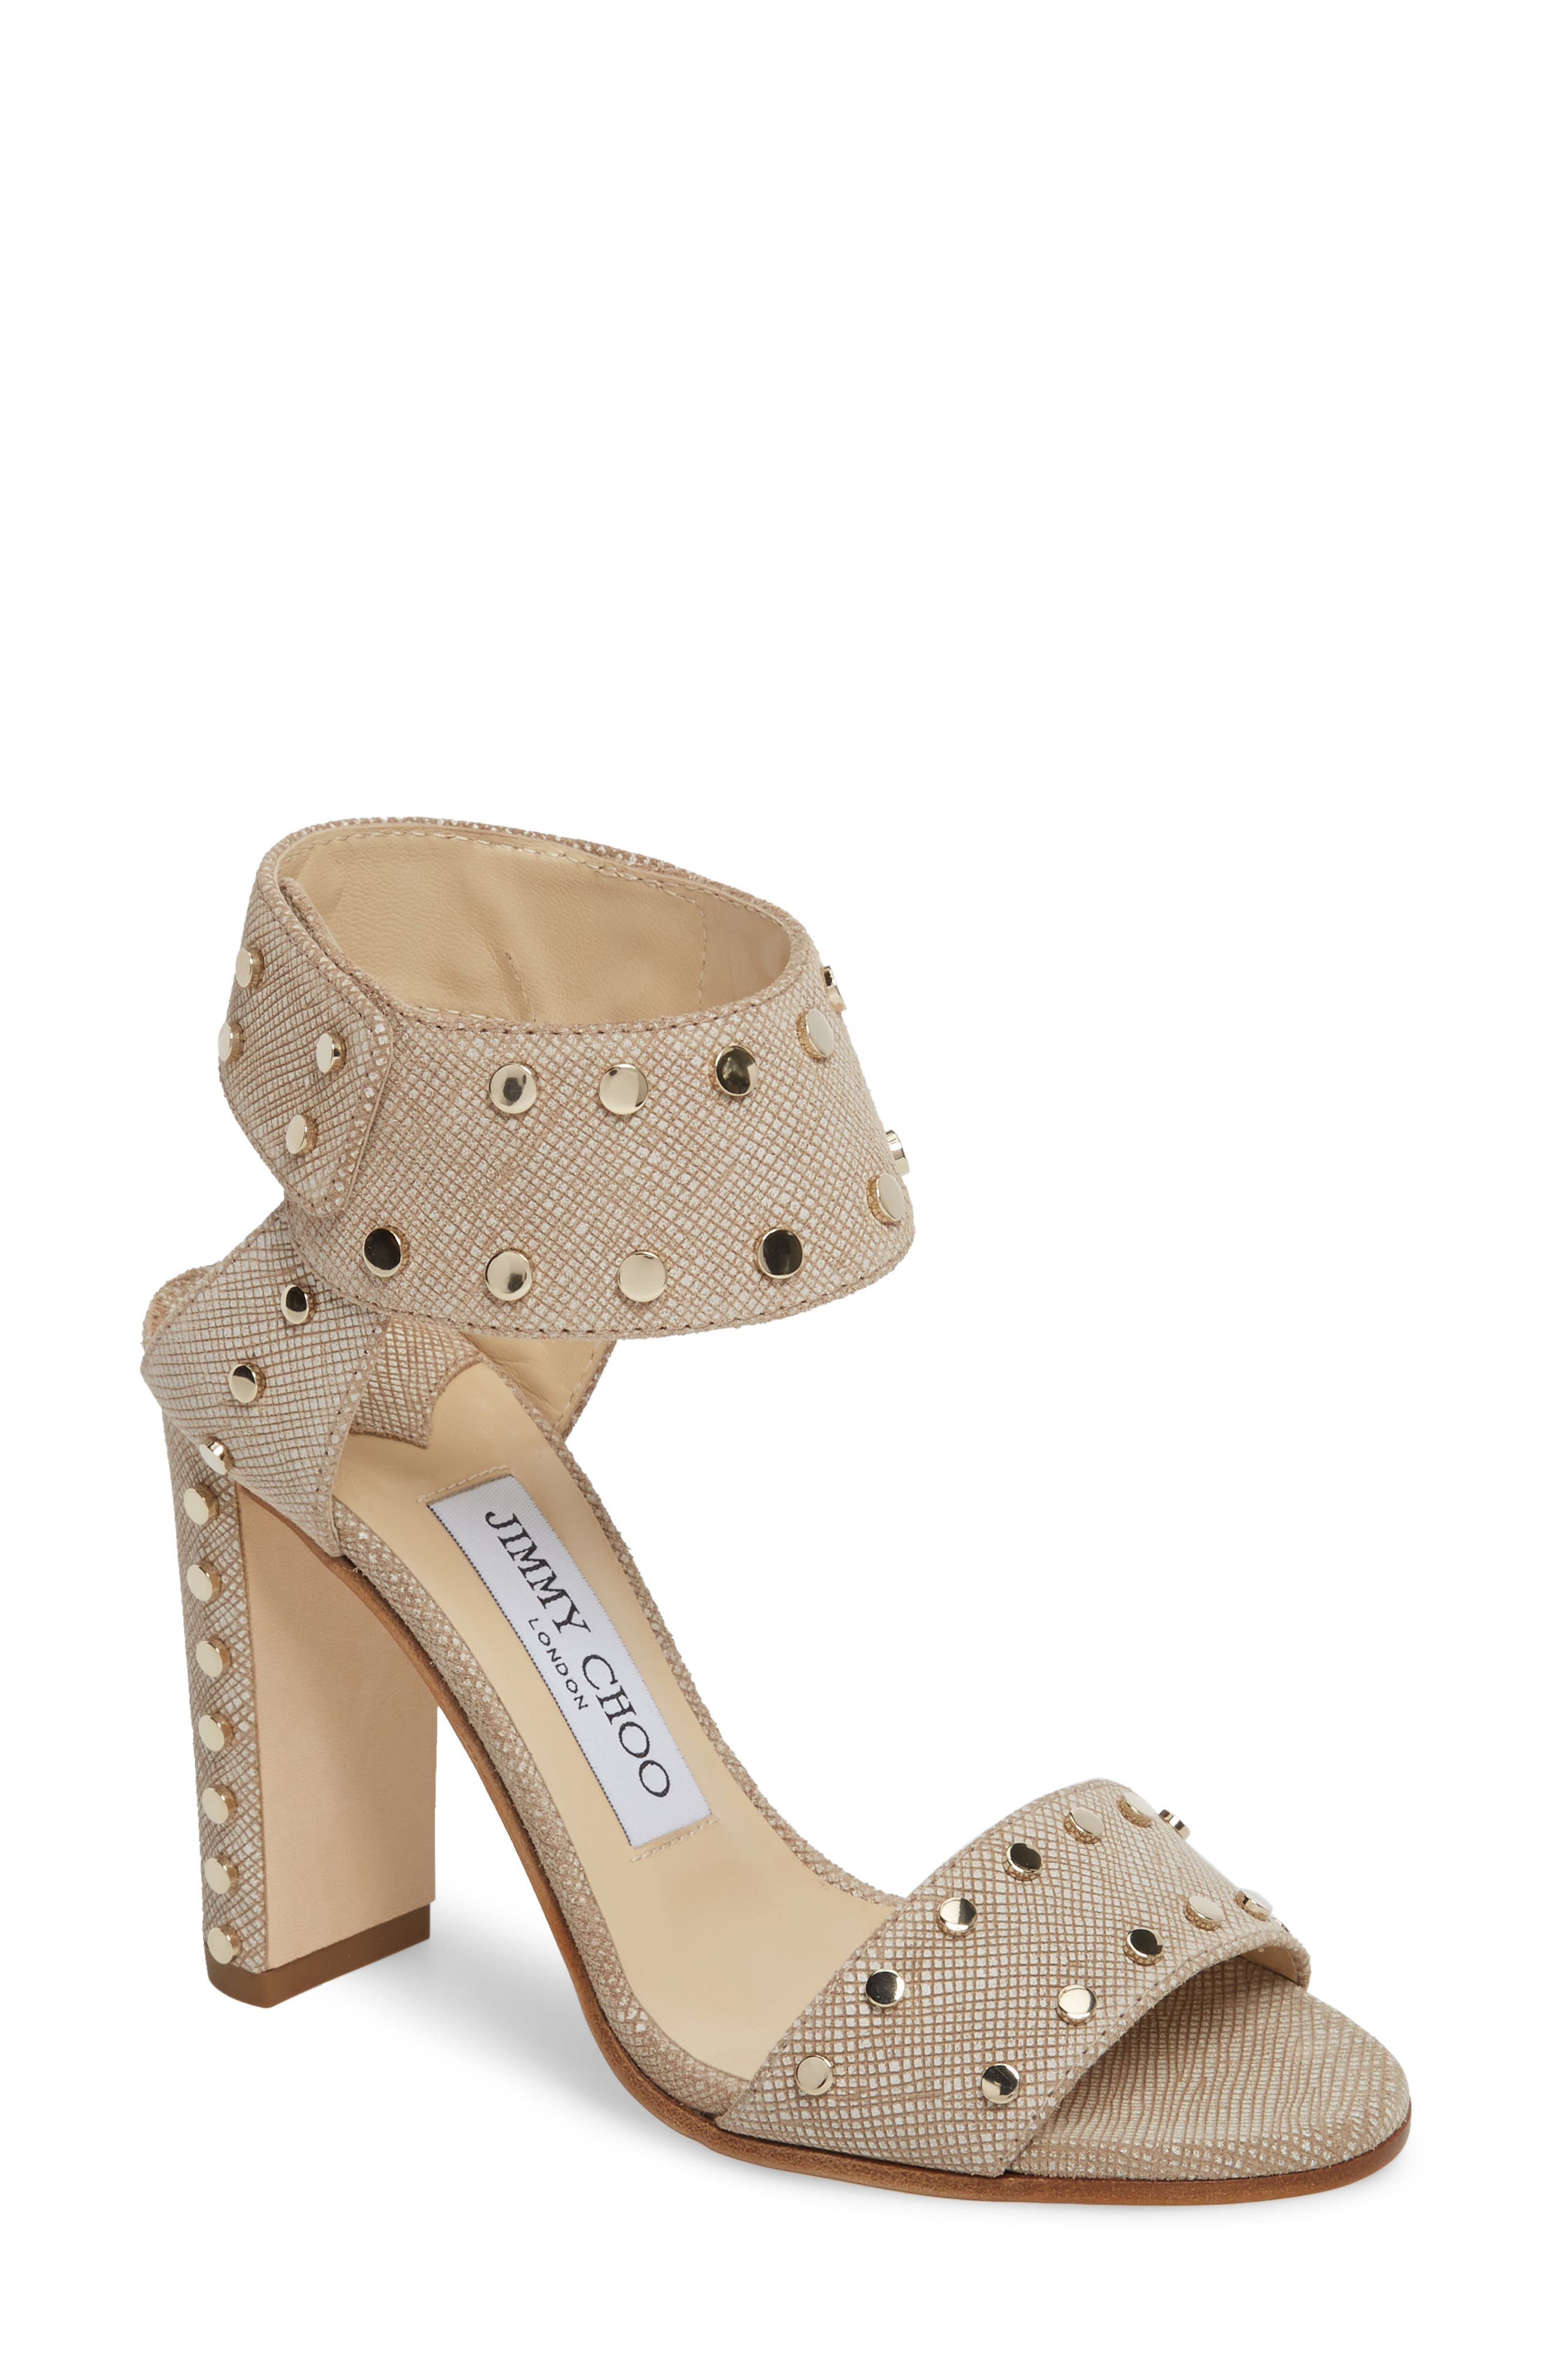 Veto Studded Ankle Cuff Sandal,                             Main thumbnail 1, color,                             Chai/ Gold